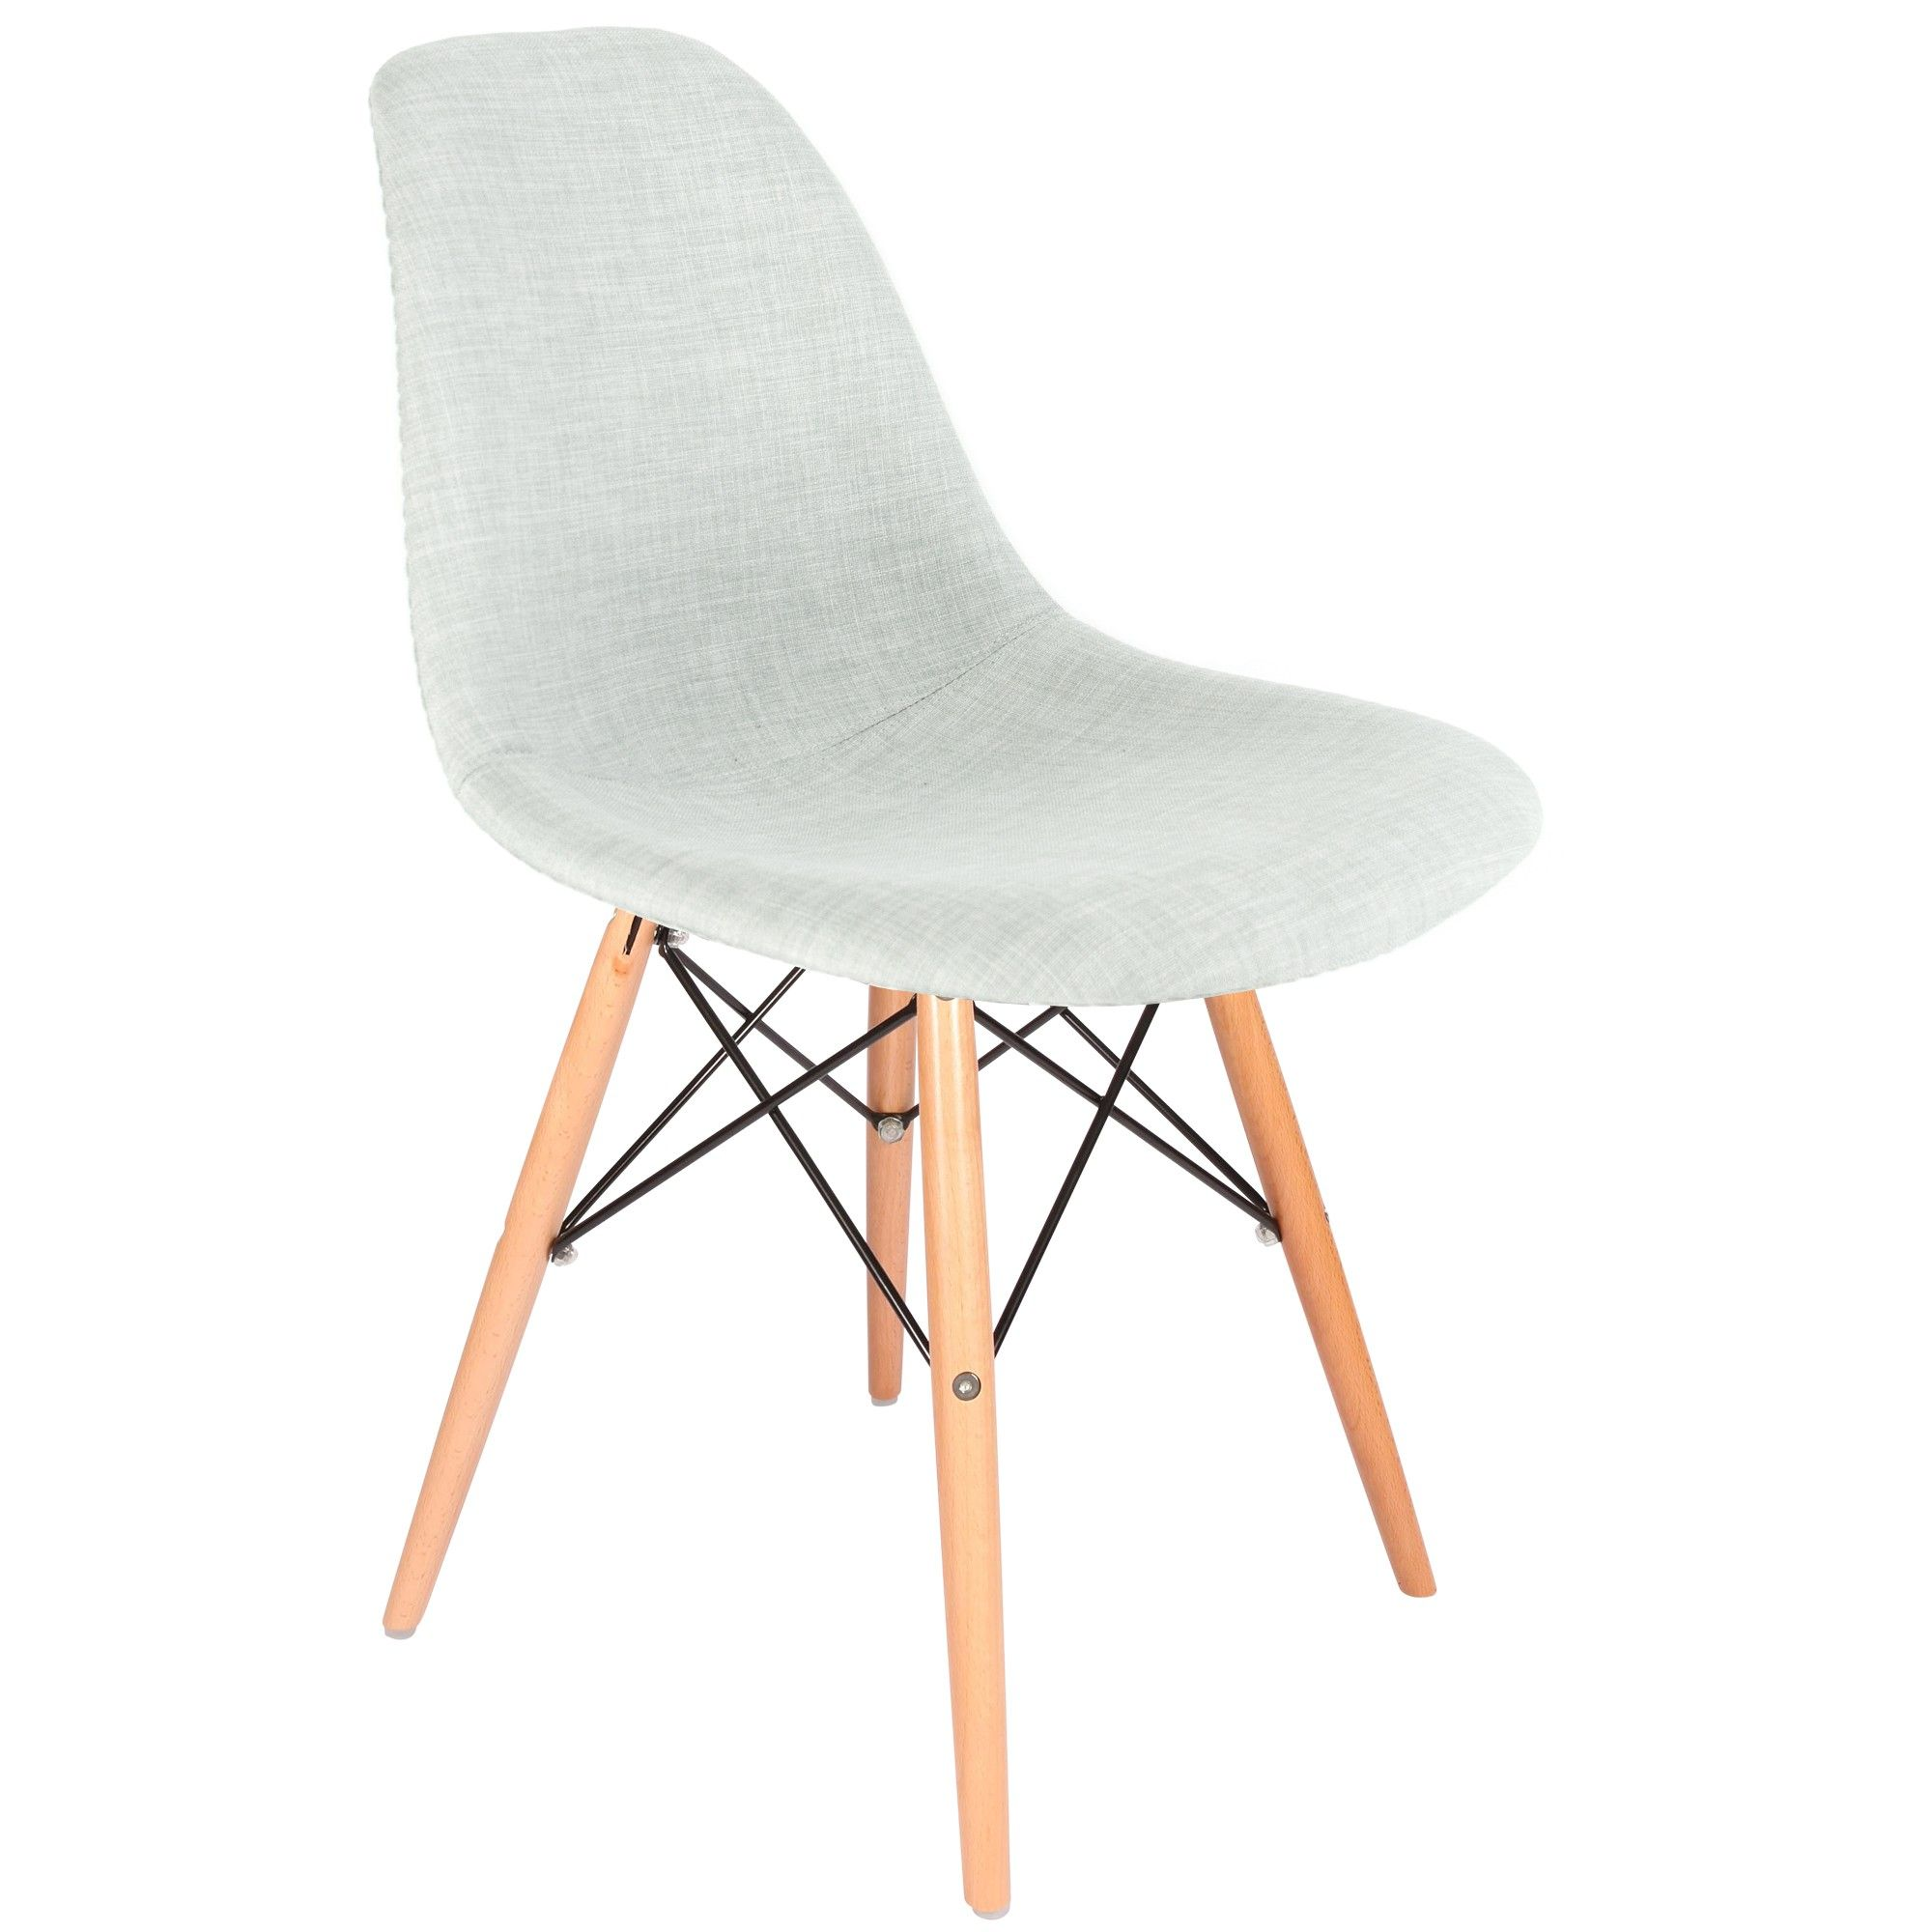 Chaise Design Dsw Tissu Chaise Dsw Chaise Charles Eames Eames